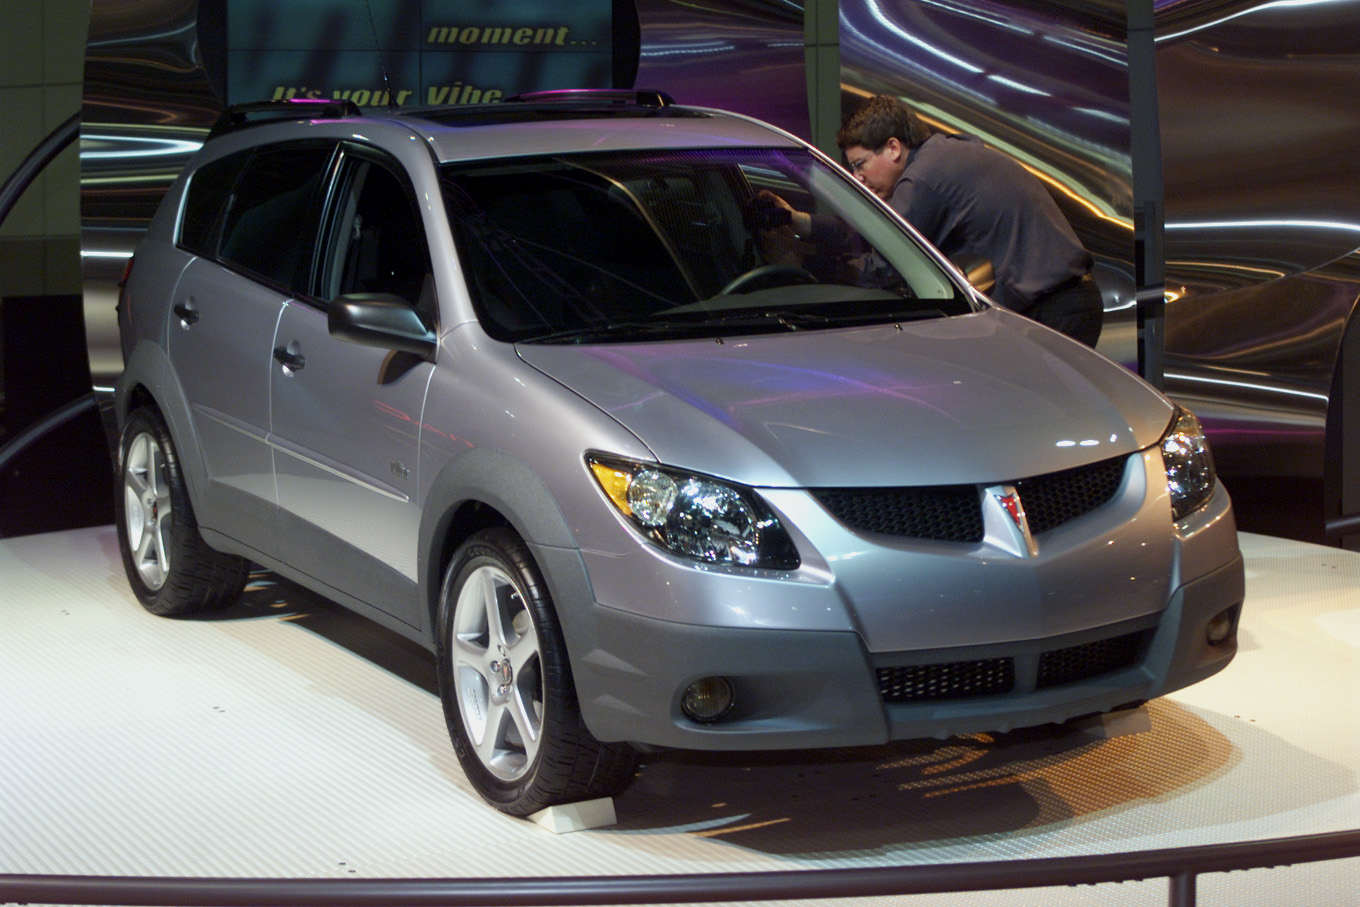 Pontiac, which has been savaged by critics for the design of its Aztek sport utility wagon, unveiled the softer, cleaner lines of the new Vibe sport wagon at the L.A. show in 2001.